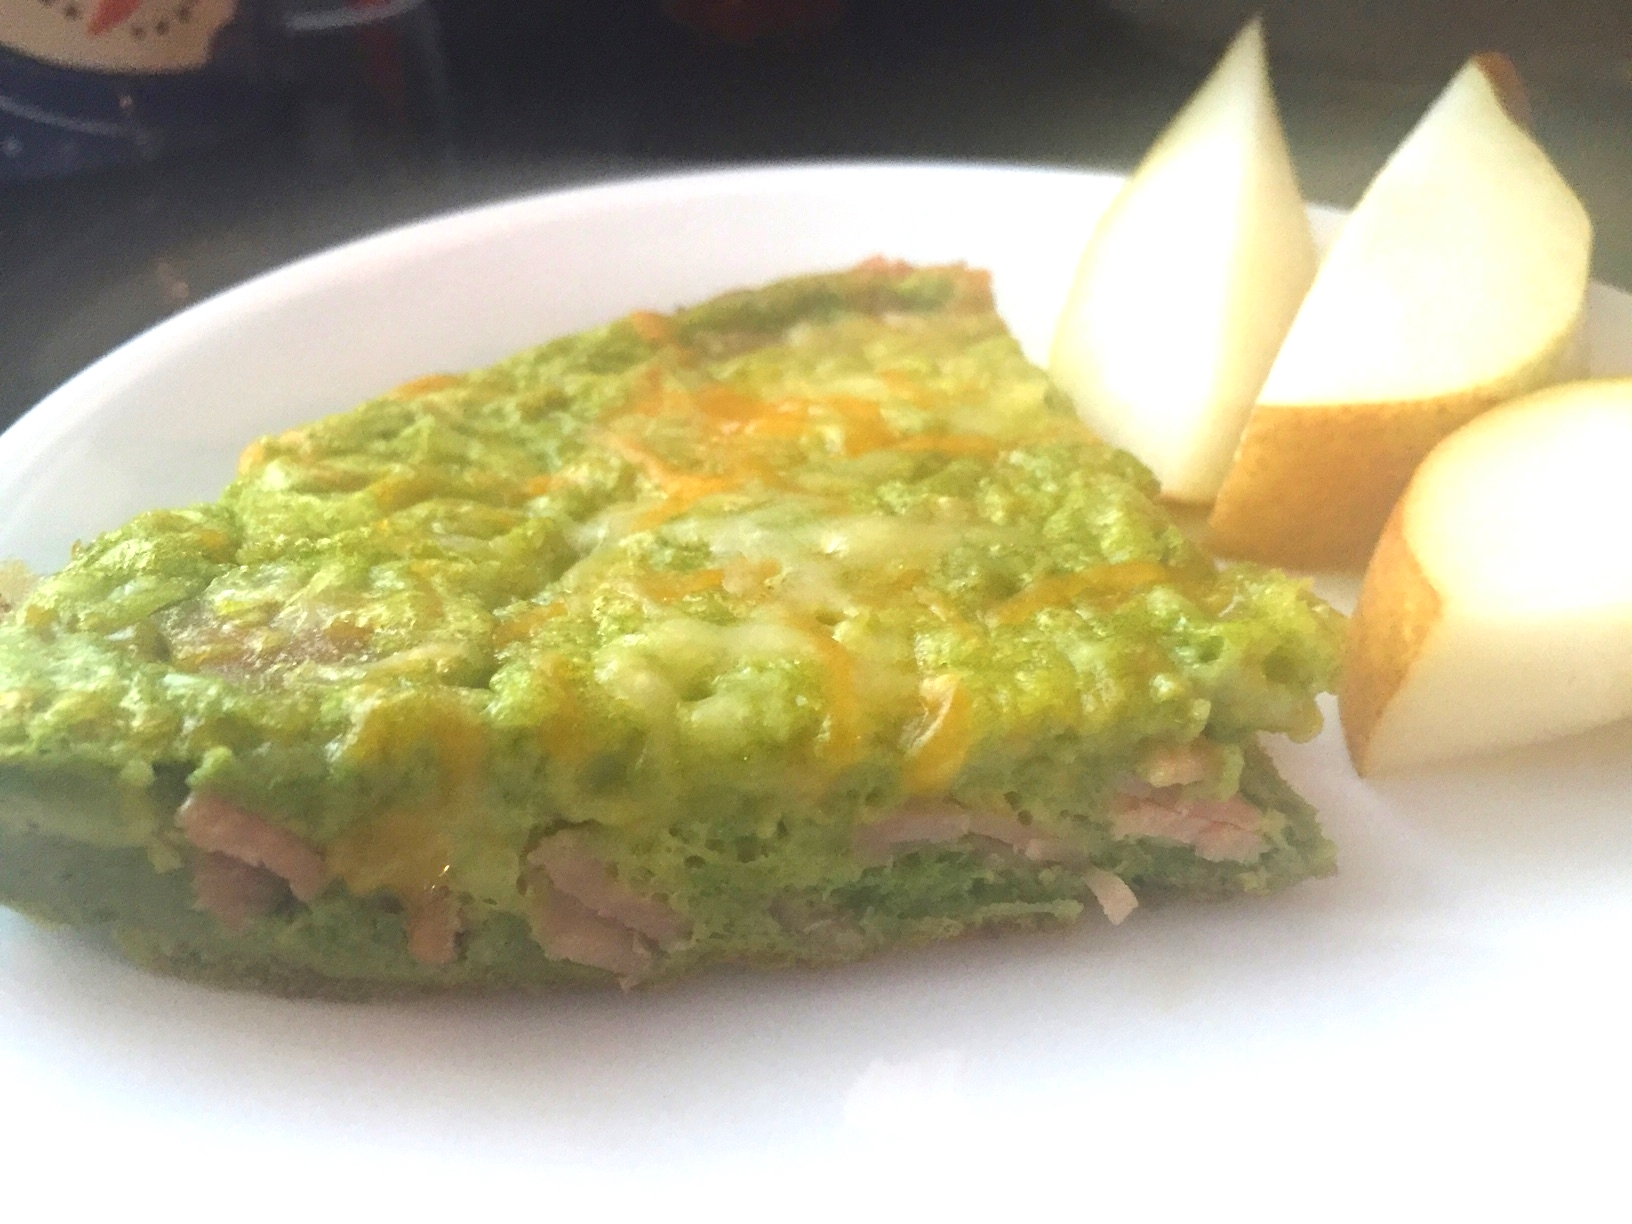 eating-understood-green-eggs-and-ham-and-fruit.JPG